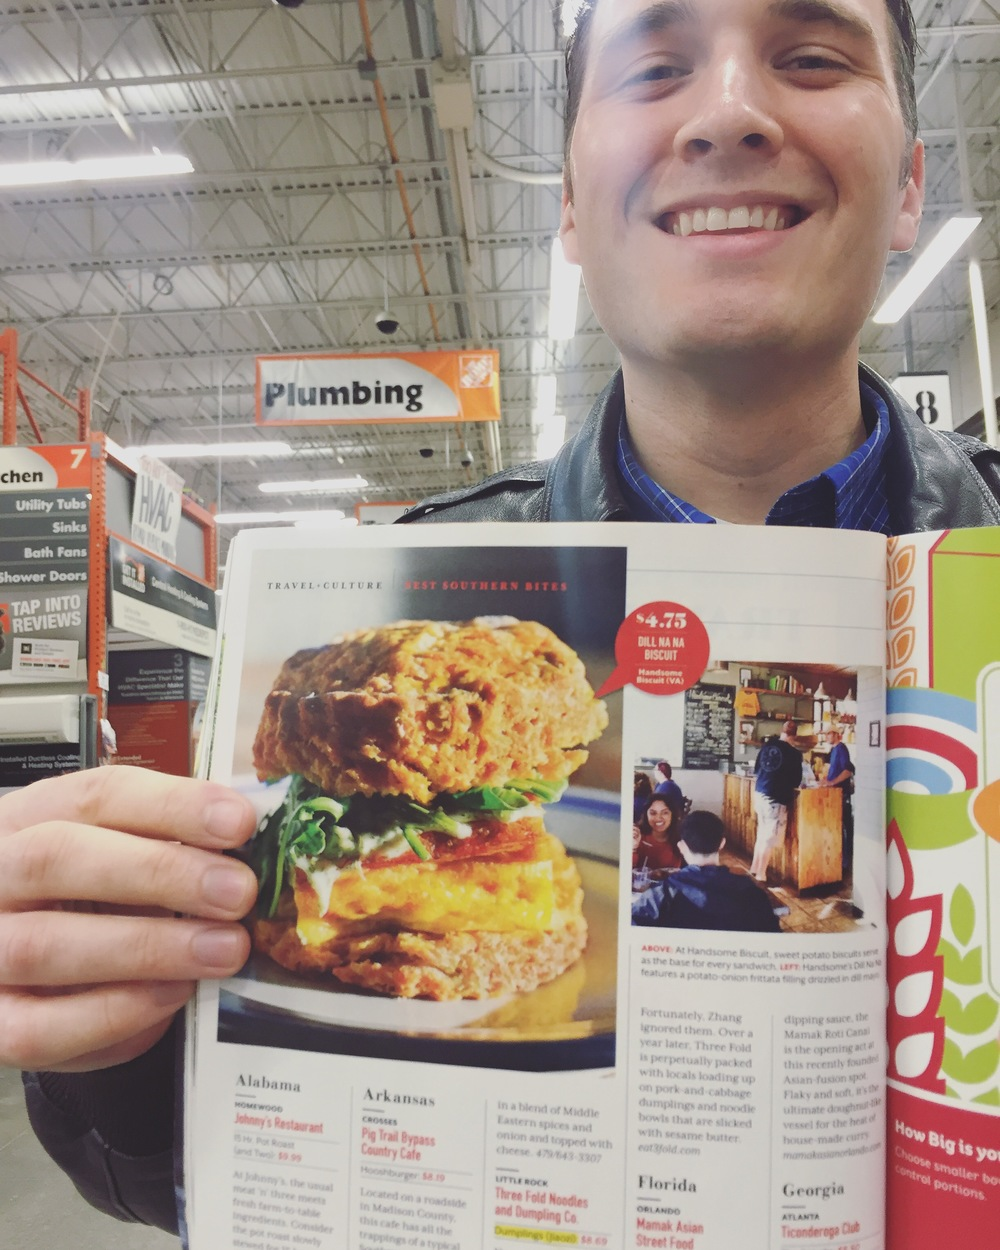 That's our food on the left and Cal is in the shot on the right. PAGE 62!